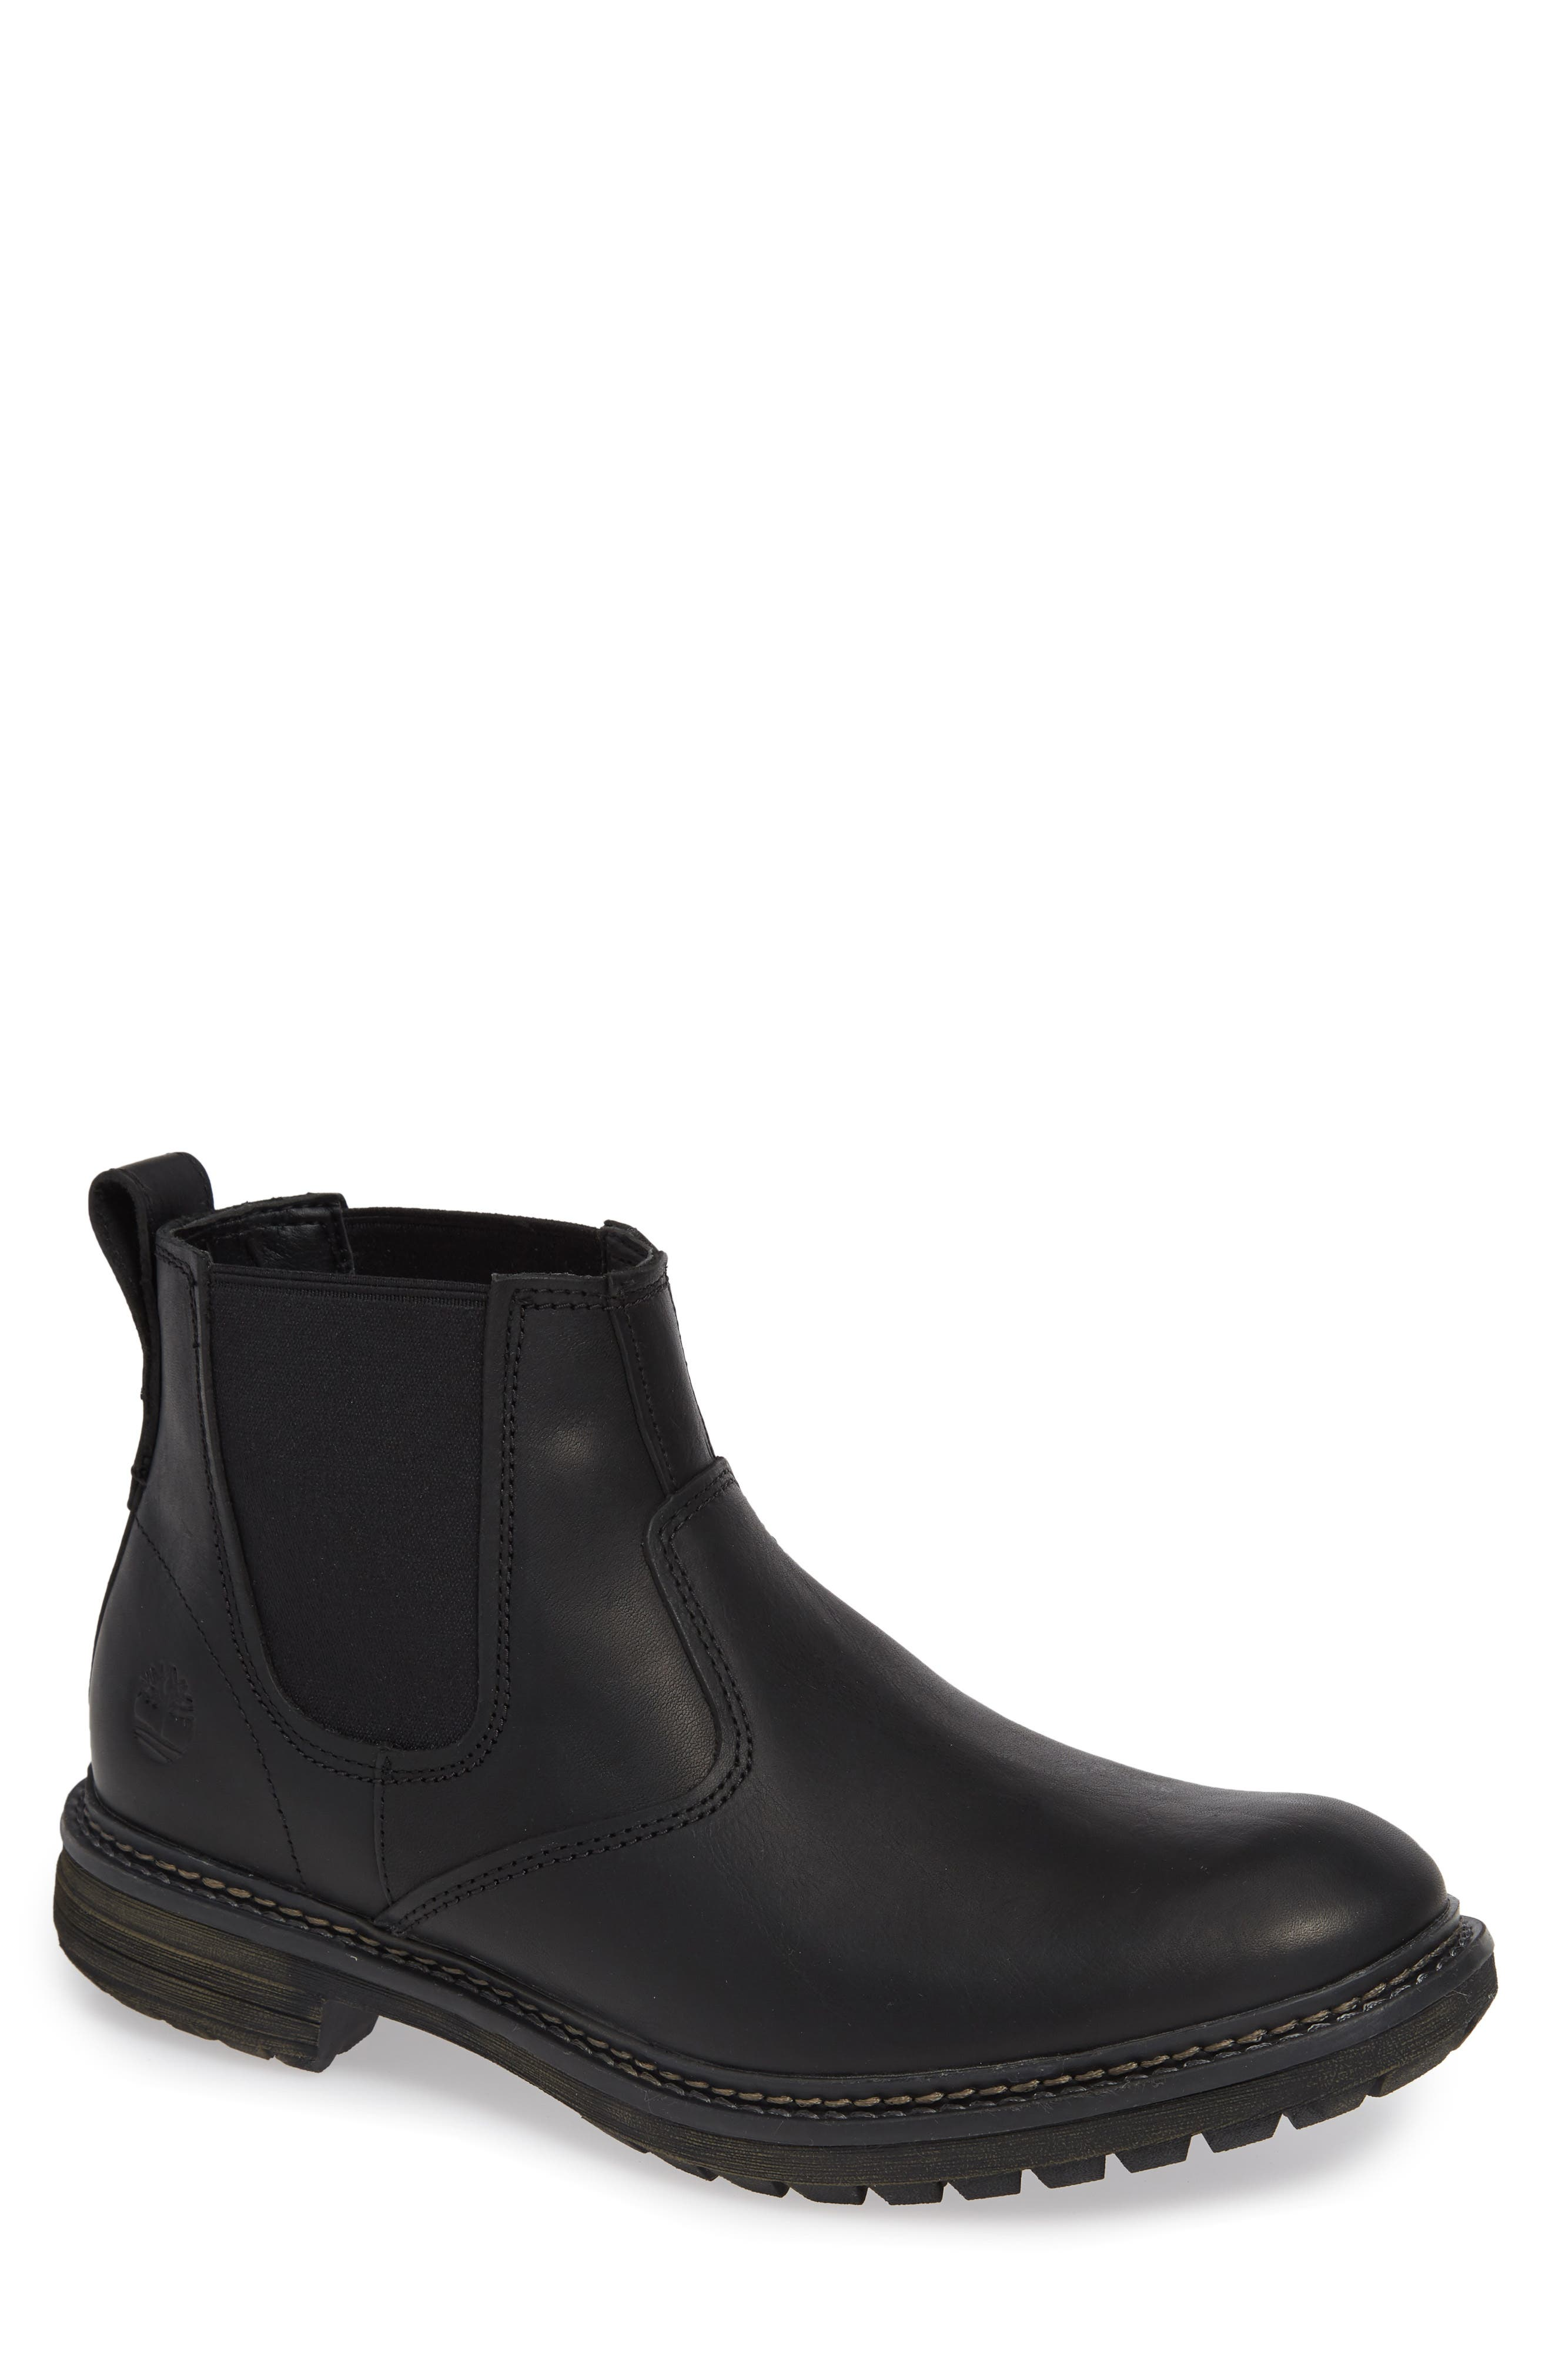 Logan Bay Water Resistant Chelsea Boot,                             Main thumbnail 1, color,                             BLACK LEATHER